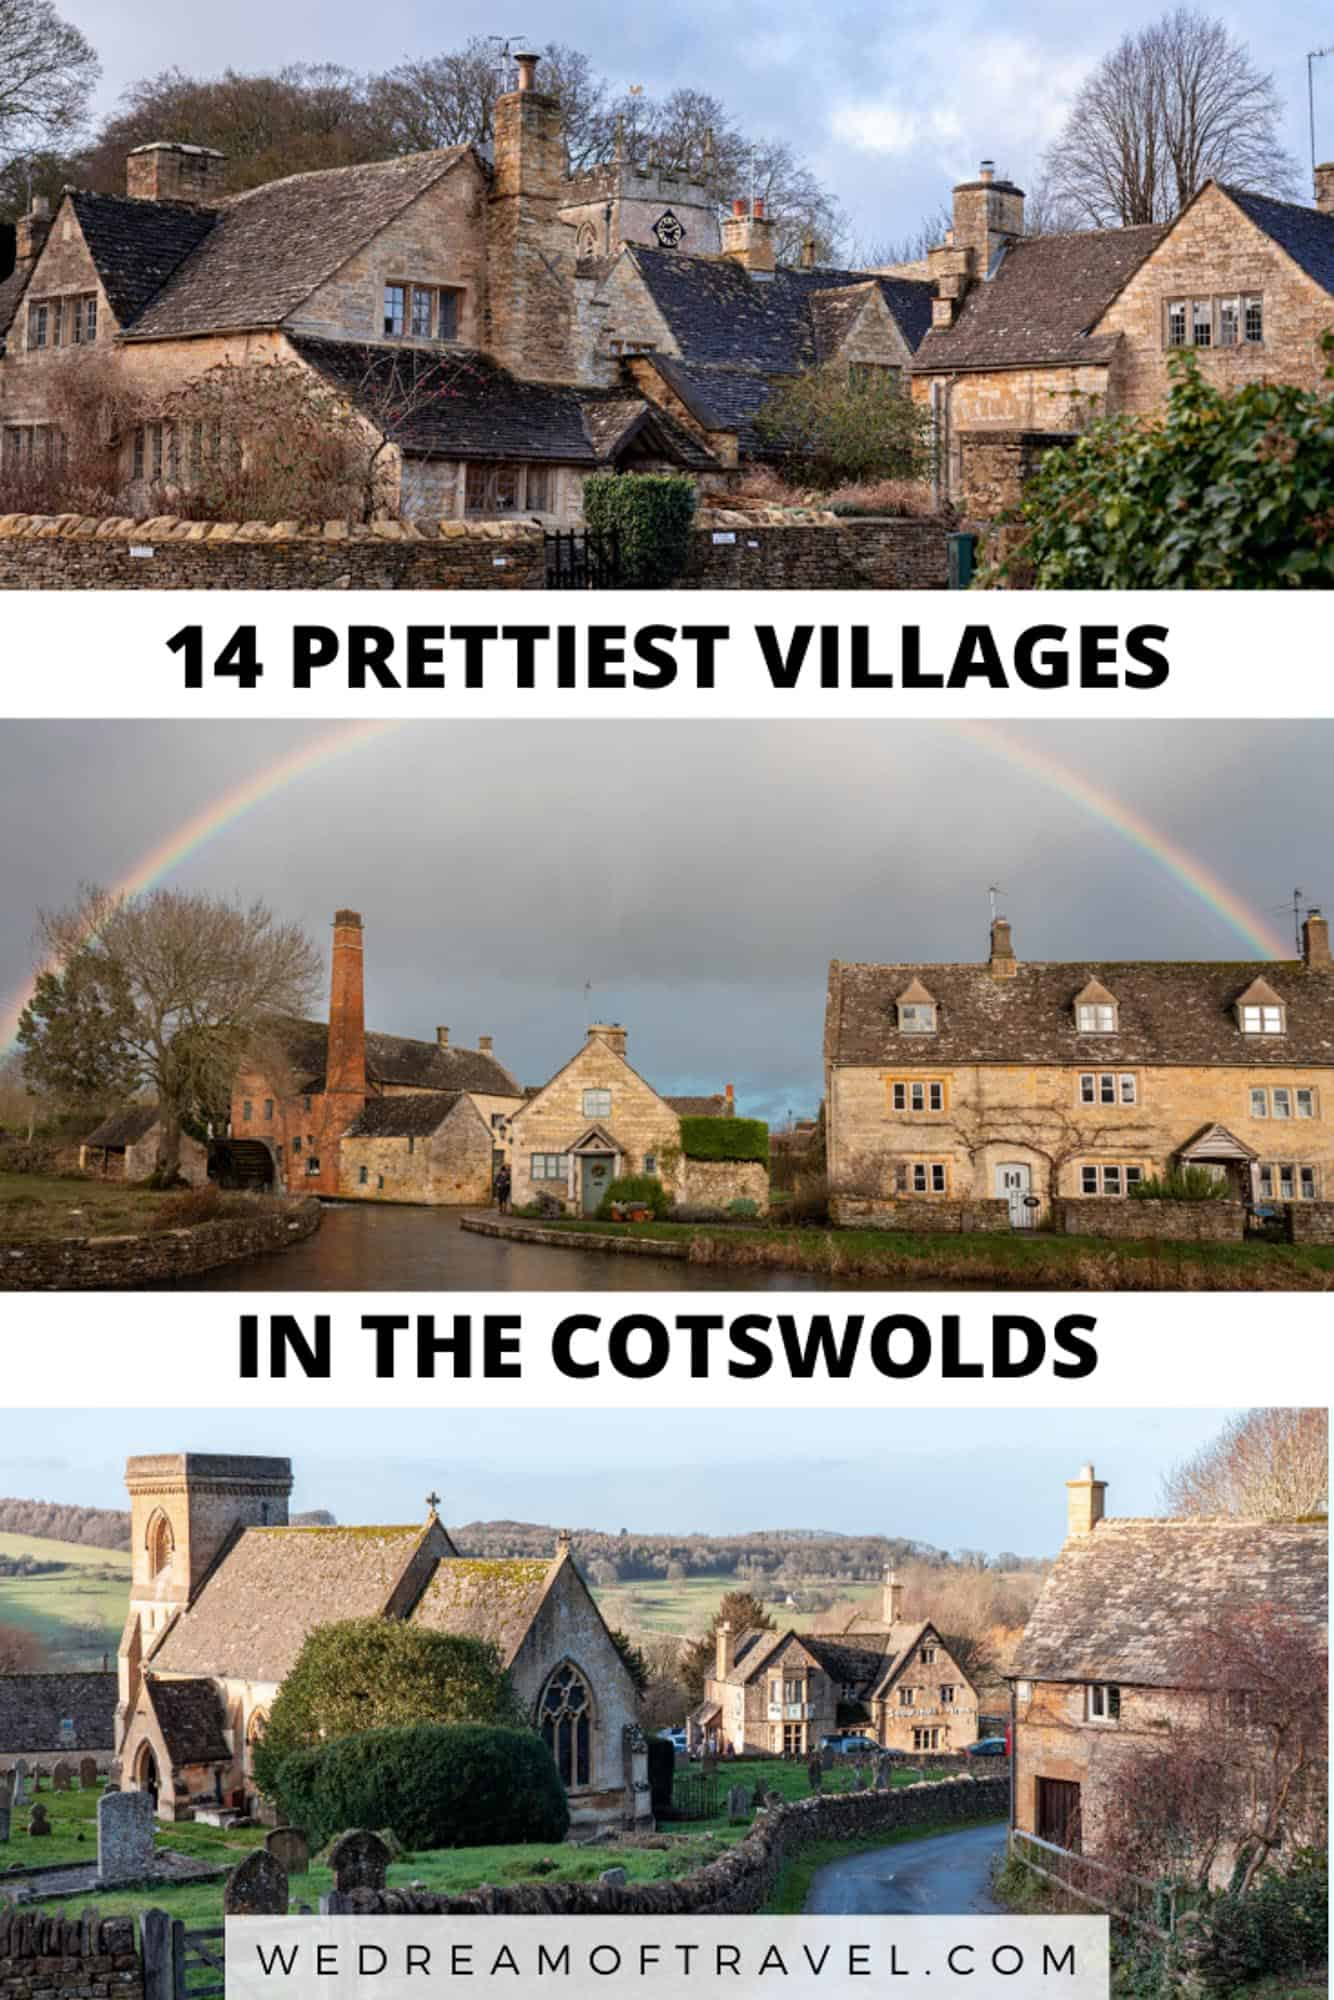 There are many picturesque villages in the Cotswolds.  This guide will help you find the prettiest villages in the Cotswolds, as well as those to skip.  With photography from each of the most beautiful villages to help inspire your Cotswolds trip. #costwolds #england